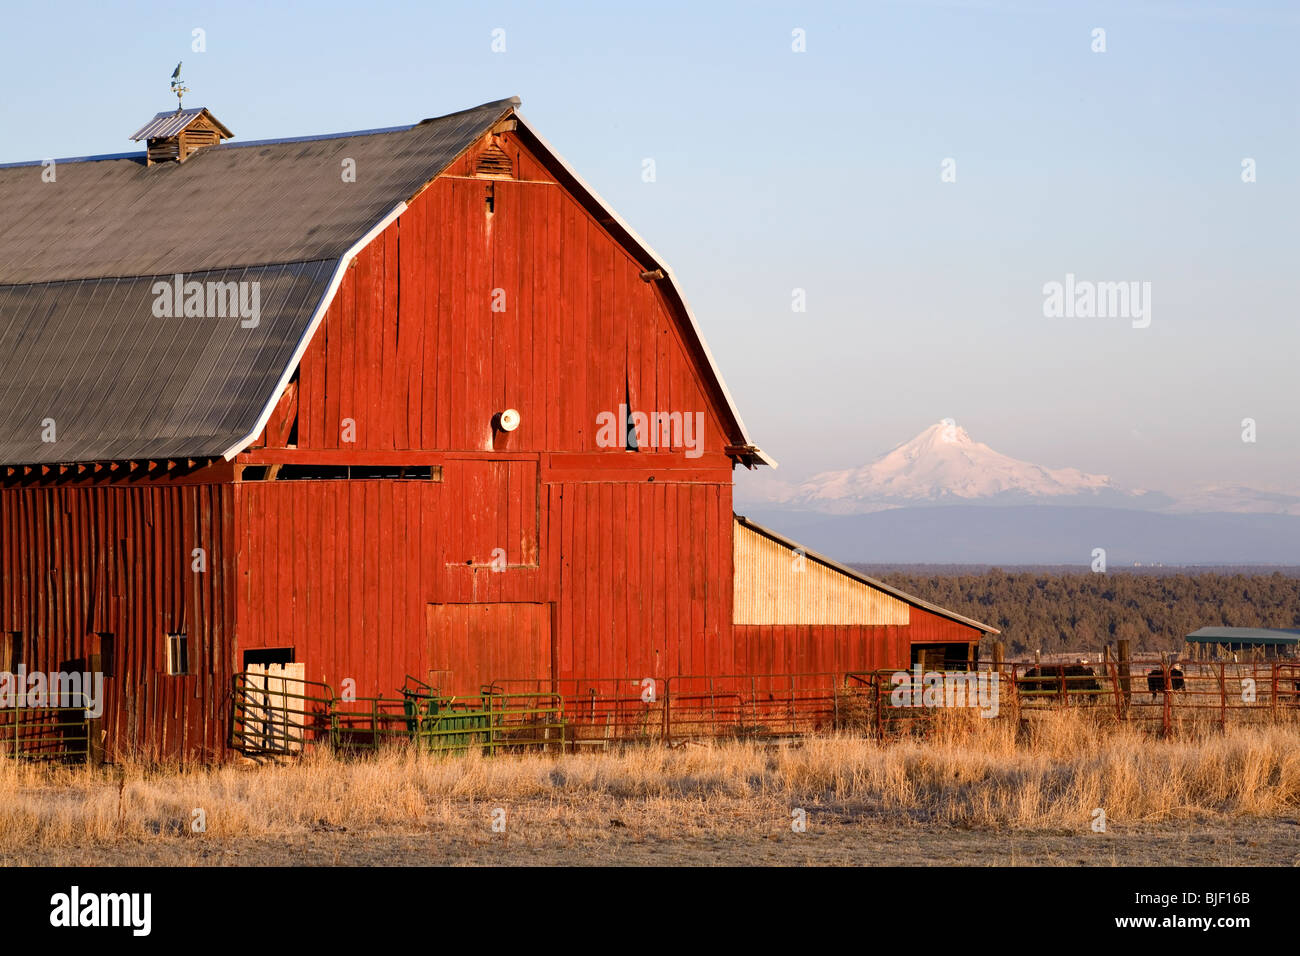 An old red barn with Mount Jefferson in the background, in central Oregon - Stock Image